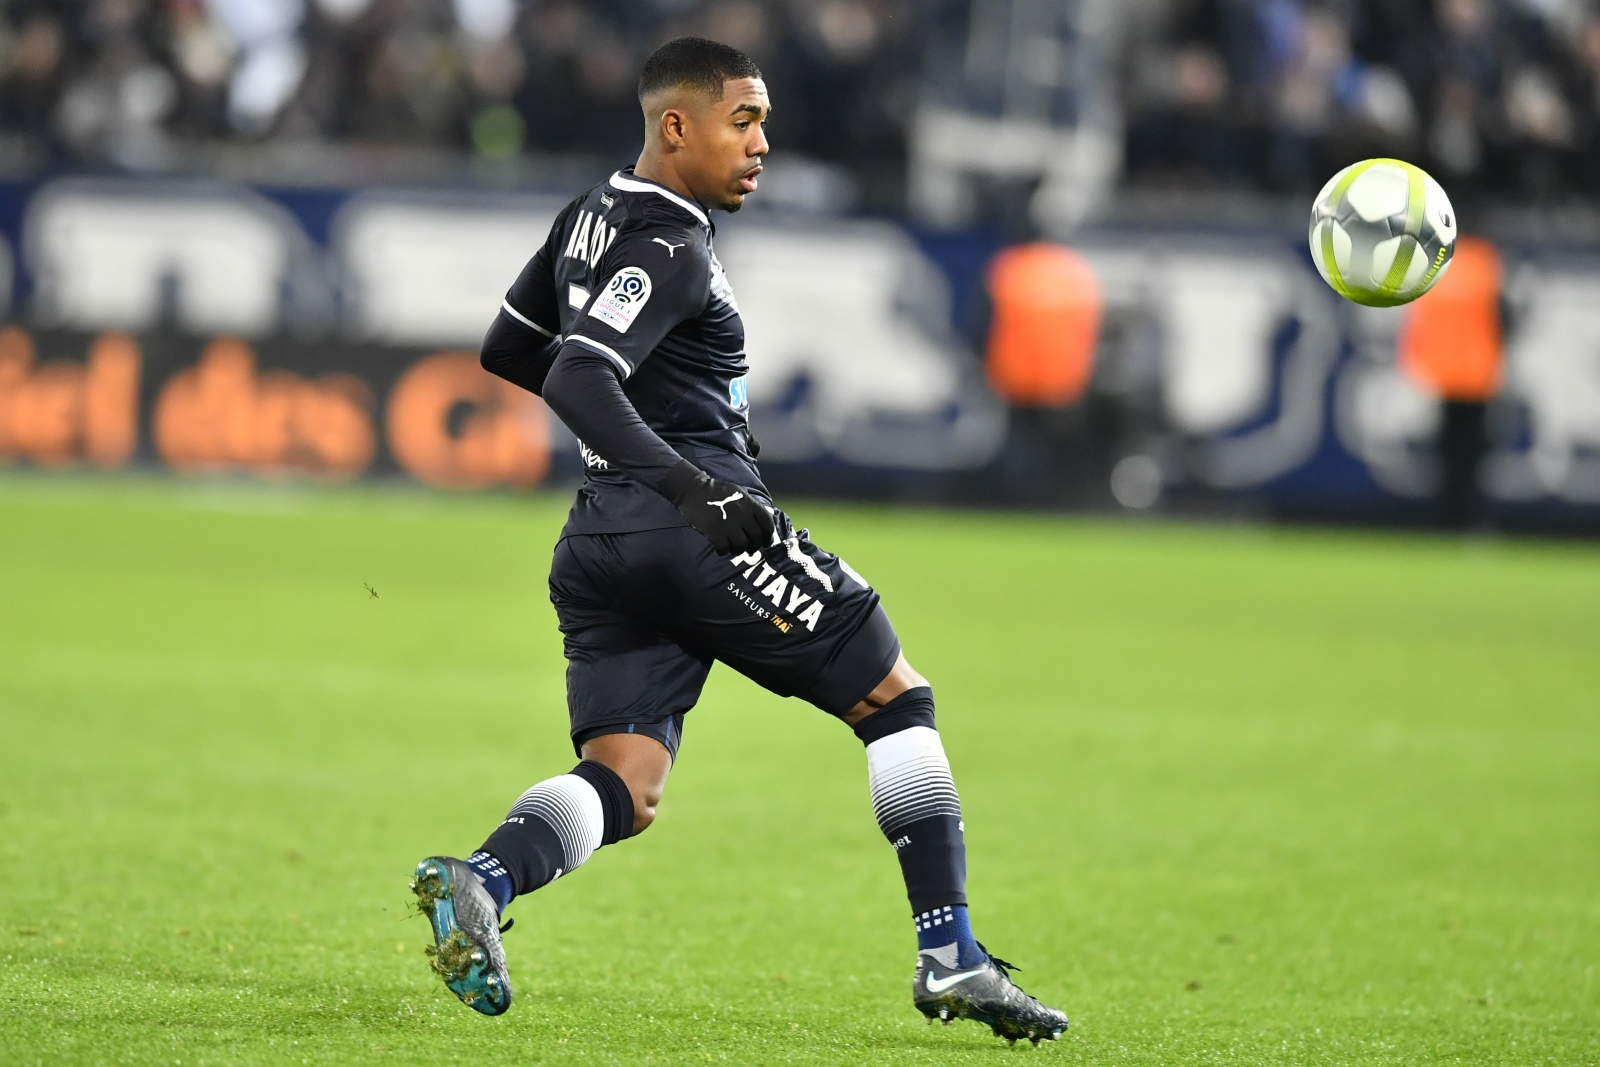 Man Utd target Malcom preparing for Premier League move with English lessons